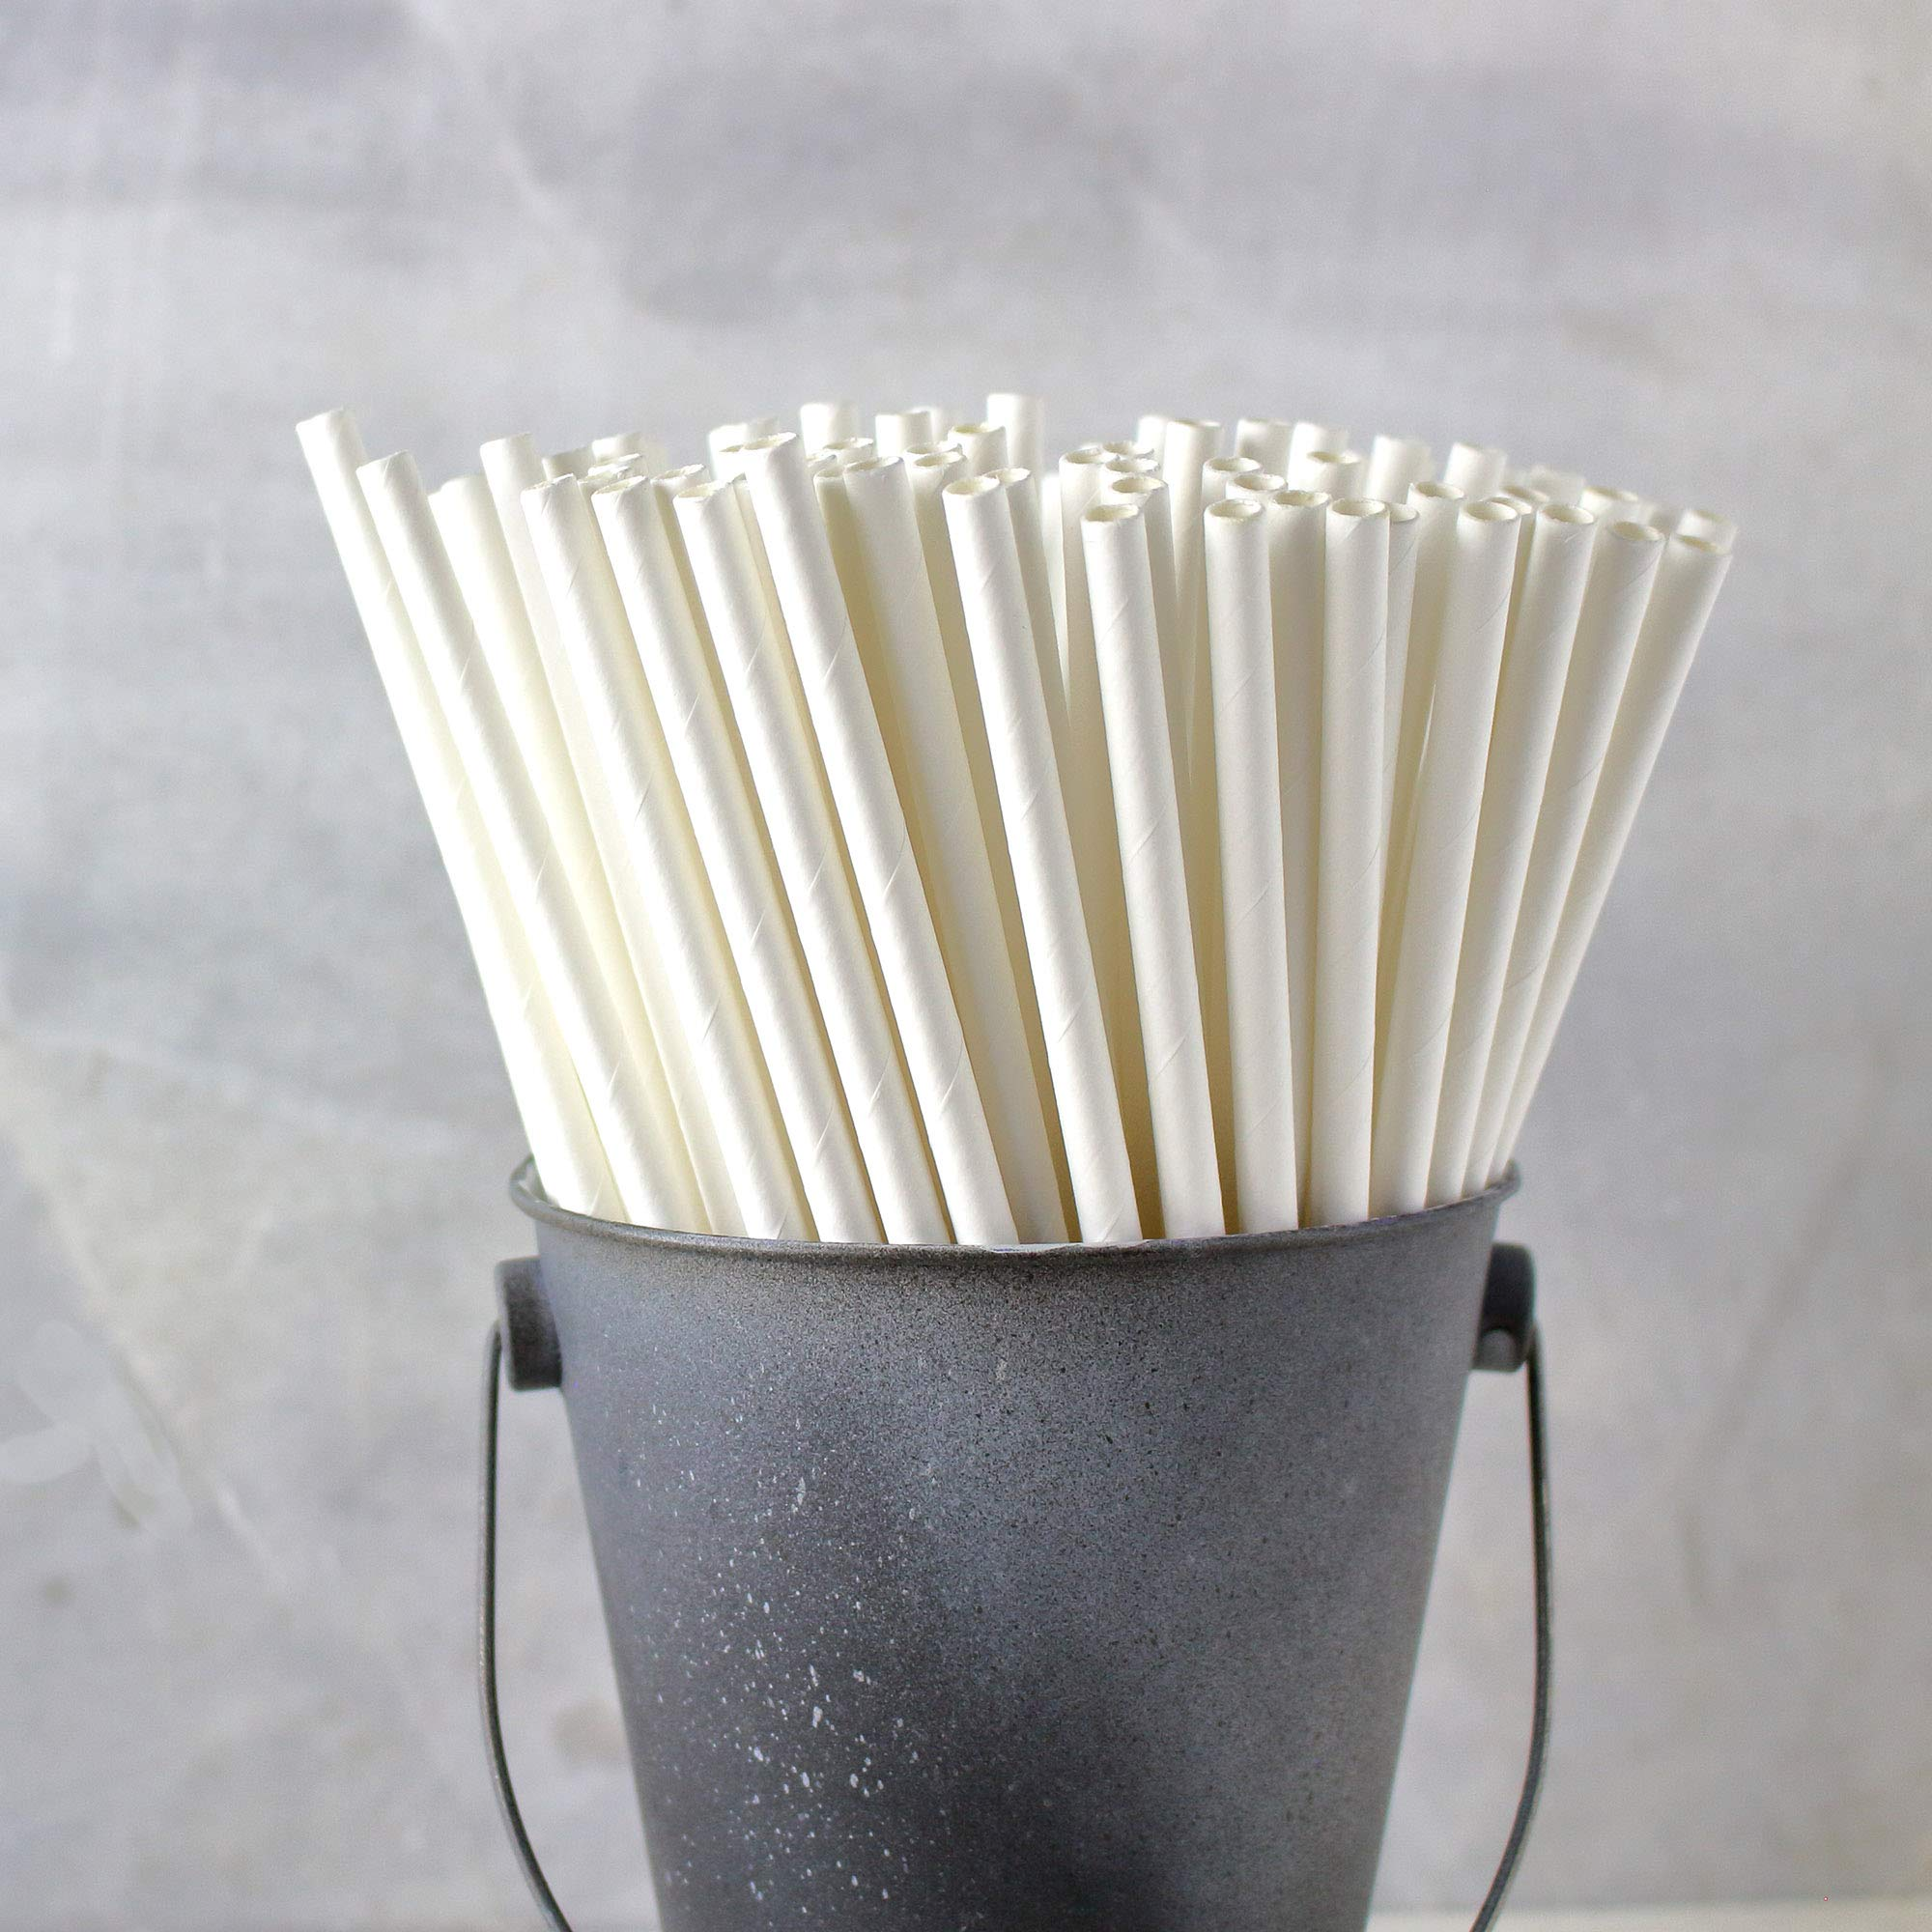 The Spice Lab Drinking Eco-Friendly Biodegradable Paper Straws 7.75'', 6mm for Juice, Shakes, Cocktail, Tea, Soda, Milkshakes, Smoothies & Parties (White - 10000 Count) by The Spice Lab